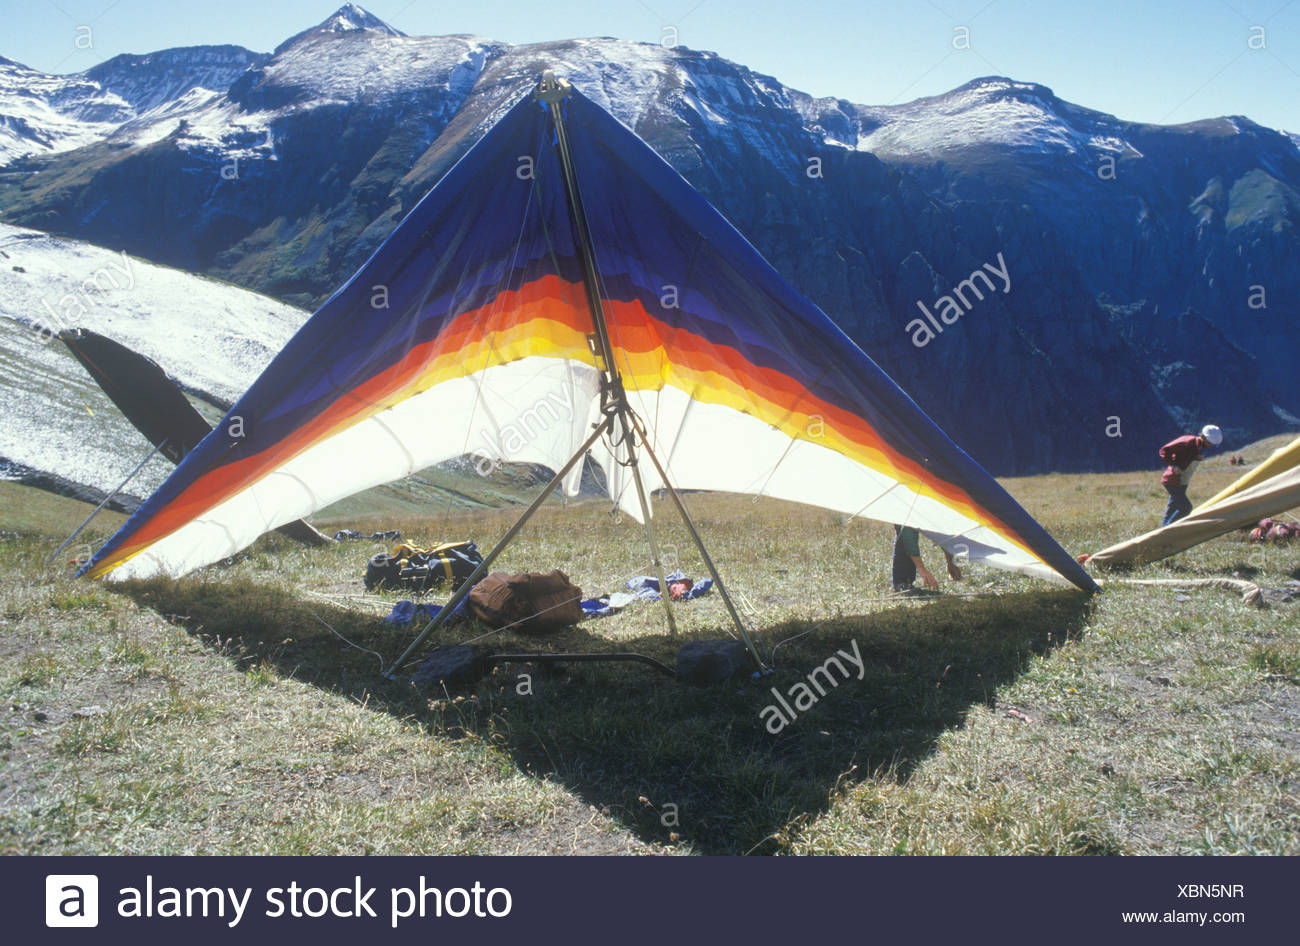 Hang glider on ground with mountains in background Hang Gliding 1300x946